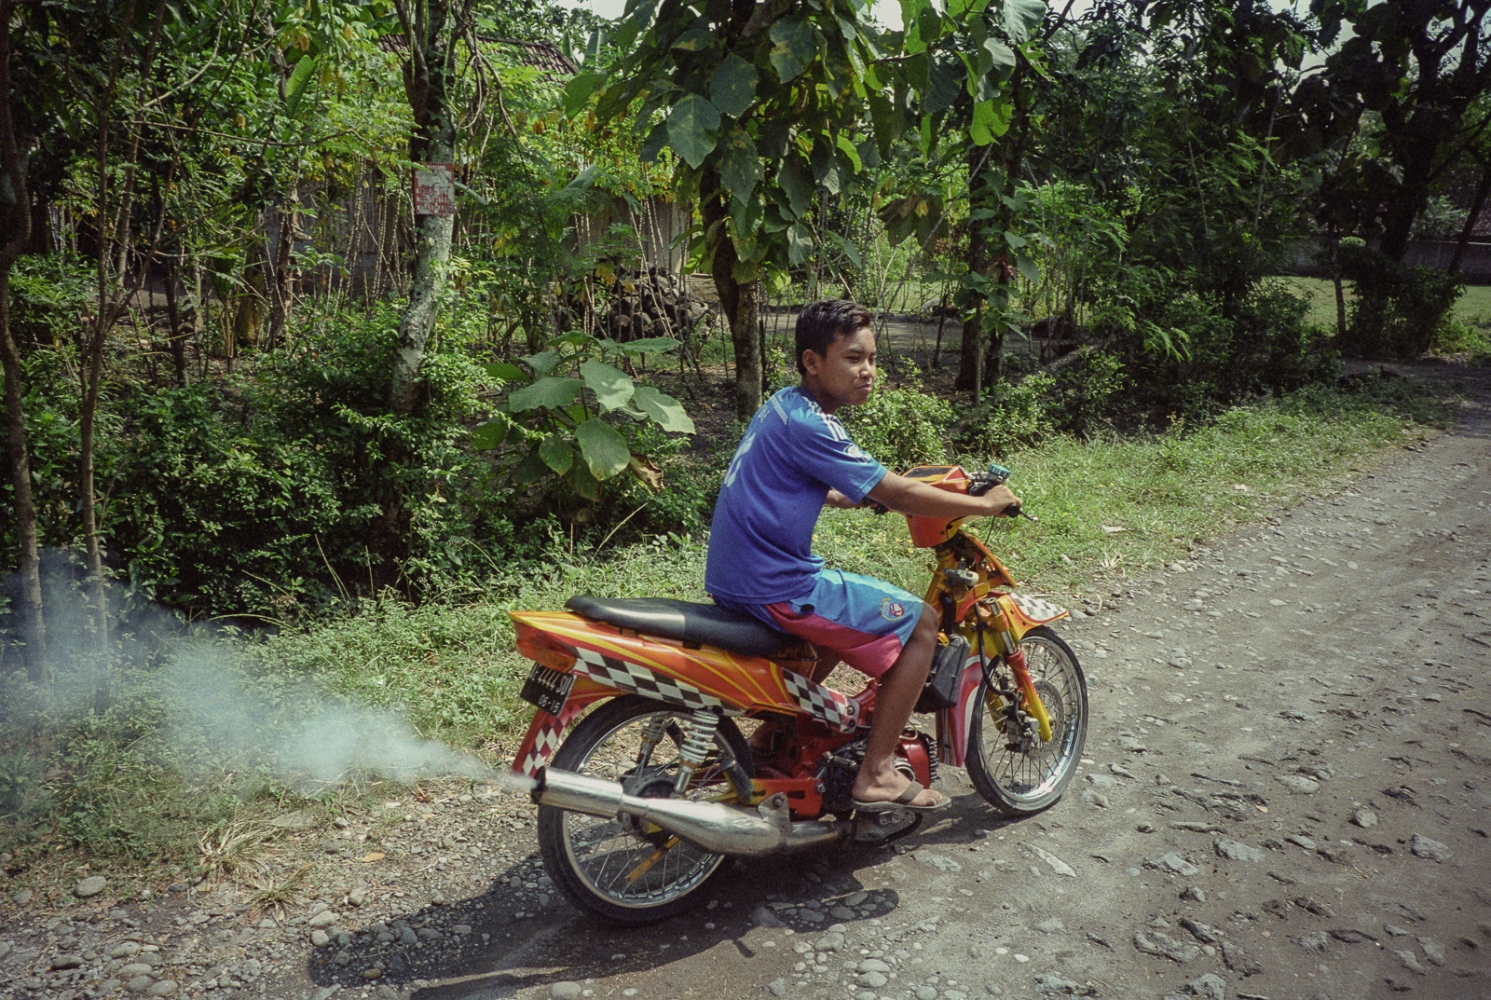 Indonesia, 2016. Mohammad Sultan Andri, 15 rides a motorcycle away from his family home in the village of Winong near the town of Ngawi, East Java. Mohammad's sister, Nina Duwi Koriah, lives here with her husband, her two children, her father and her two brothers. Now back in Indonesia after her accident in Singapore, where she was employed as a domestic worker, Nina is staying with her family until she is well enough to work. She intends to stay near home, and look for work in the town of Ngawi, possibly as a sales assistant.